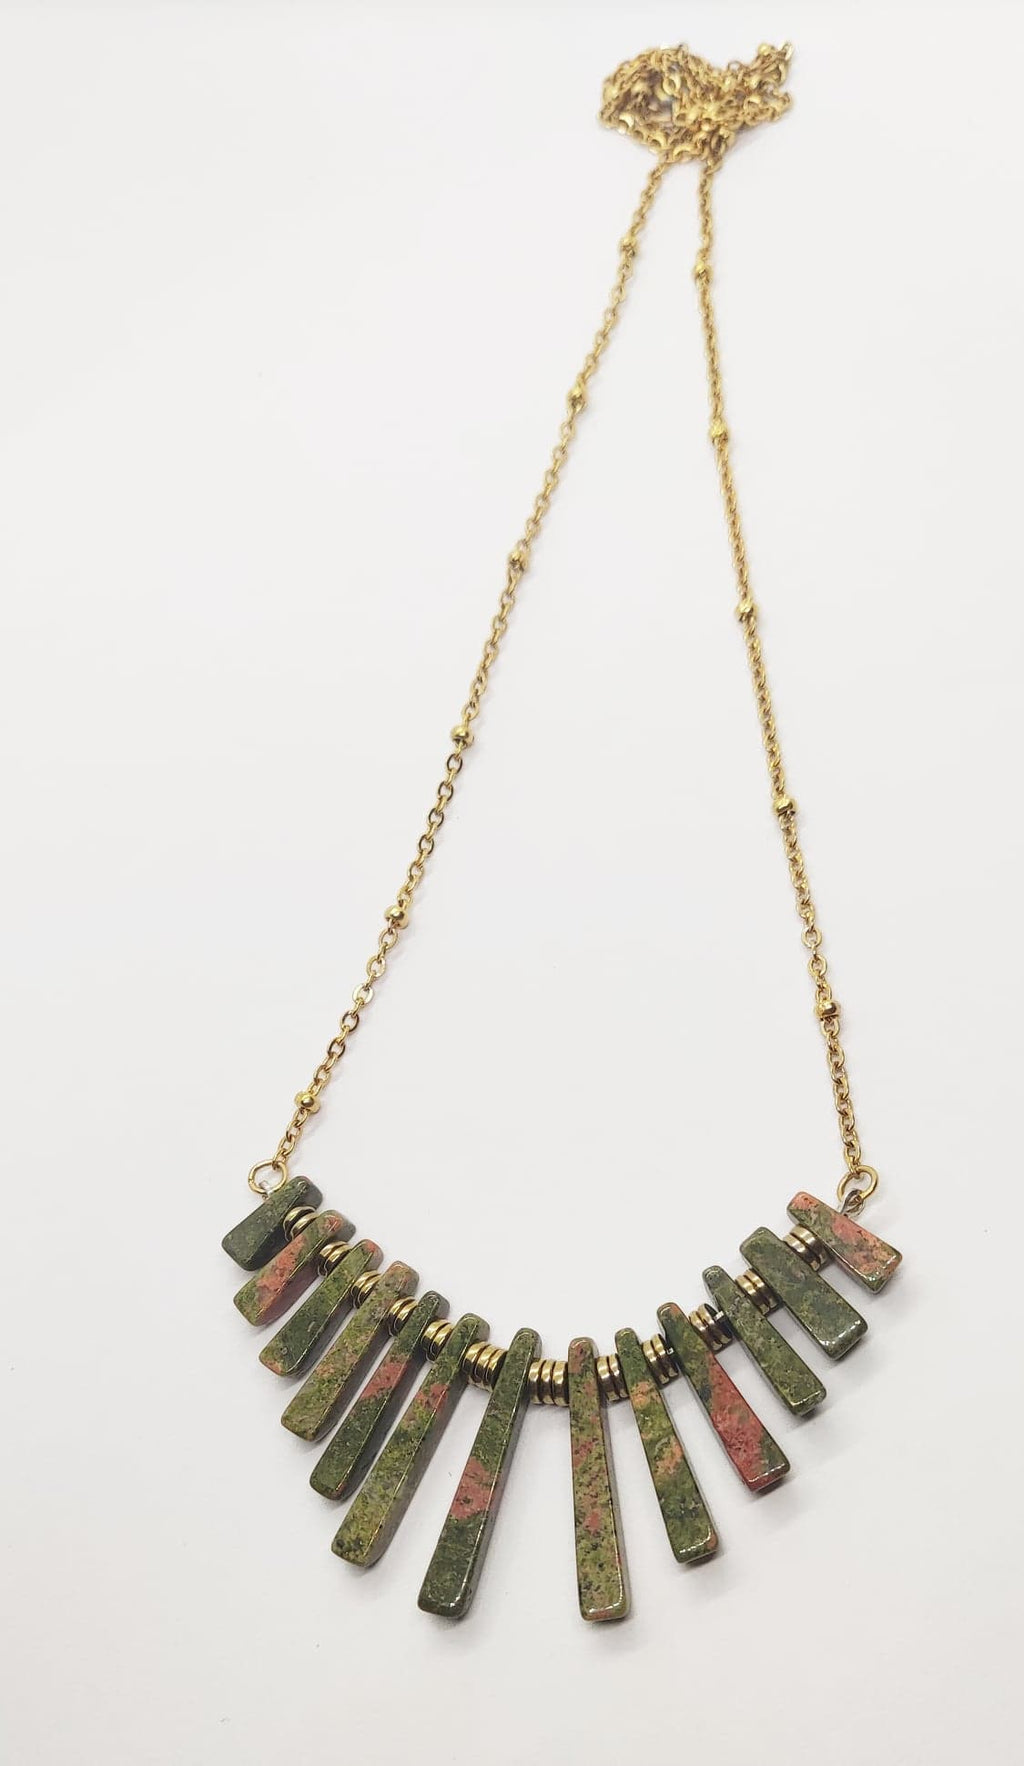 Green and pink ukaite necklace